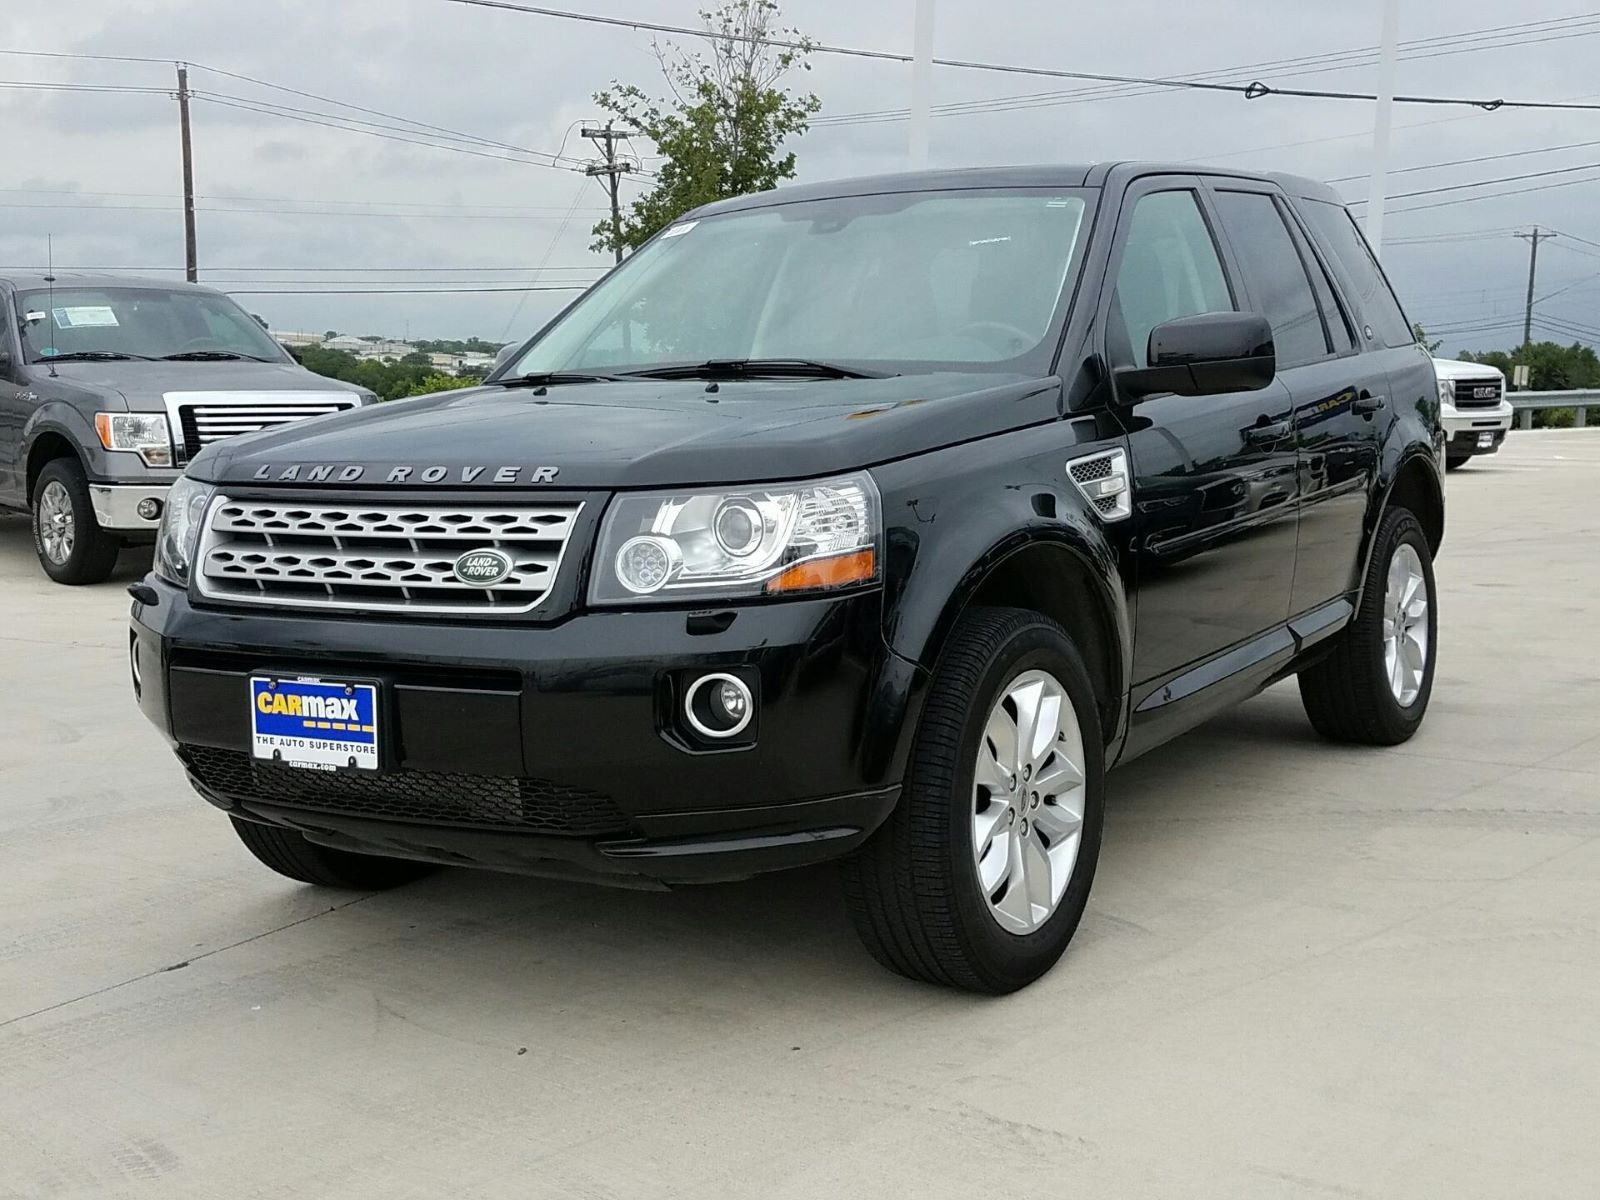 used 2014 land rover lr2 in san antonio, texas | carmax | cars